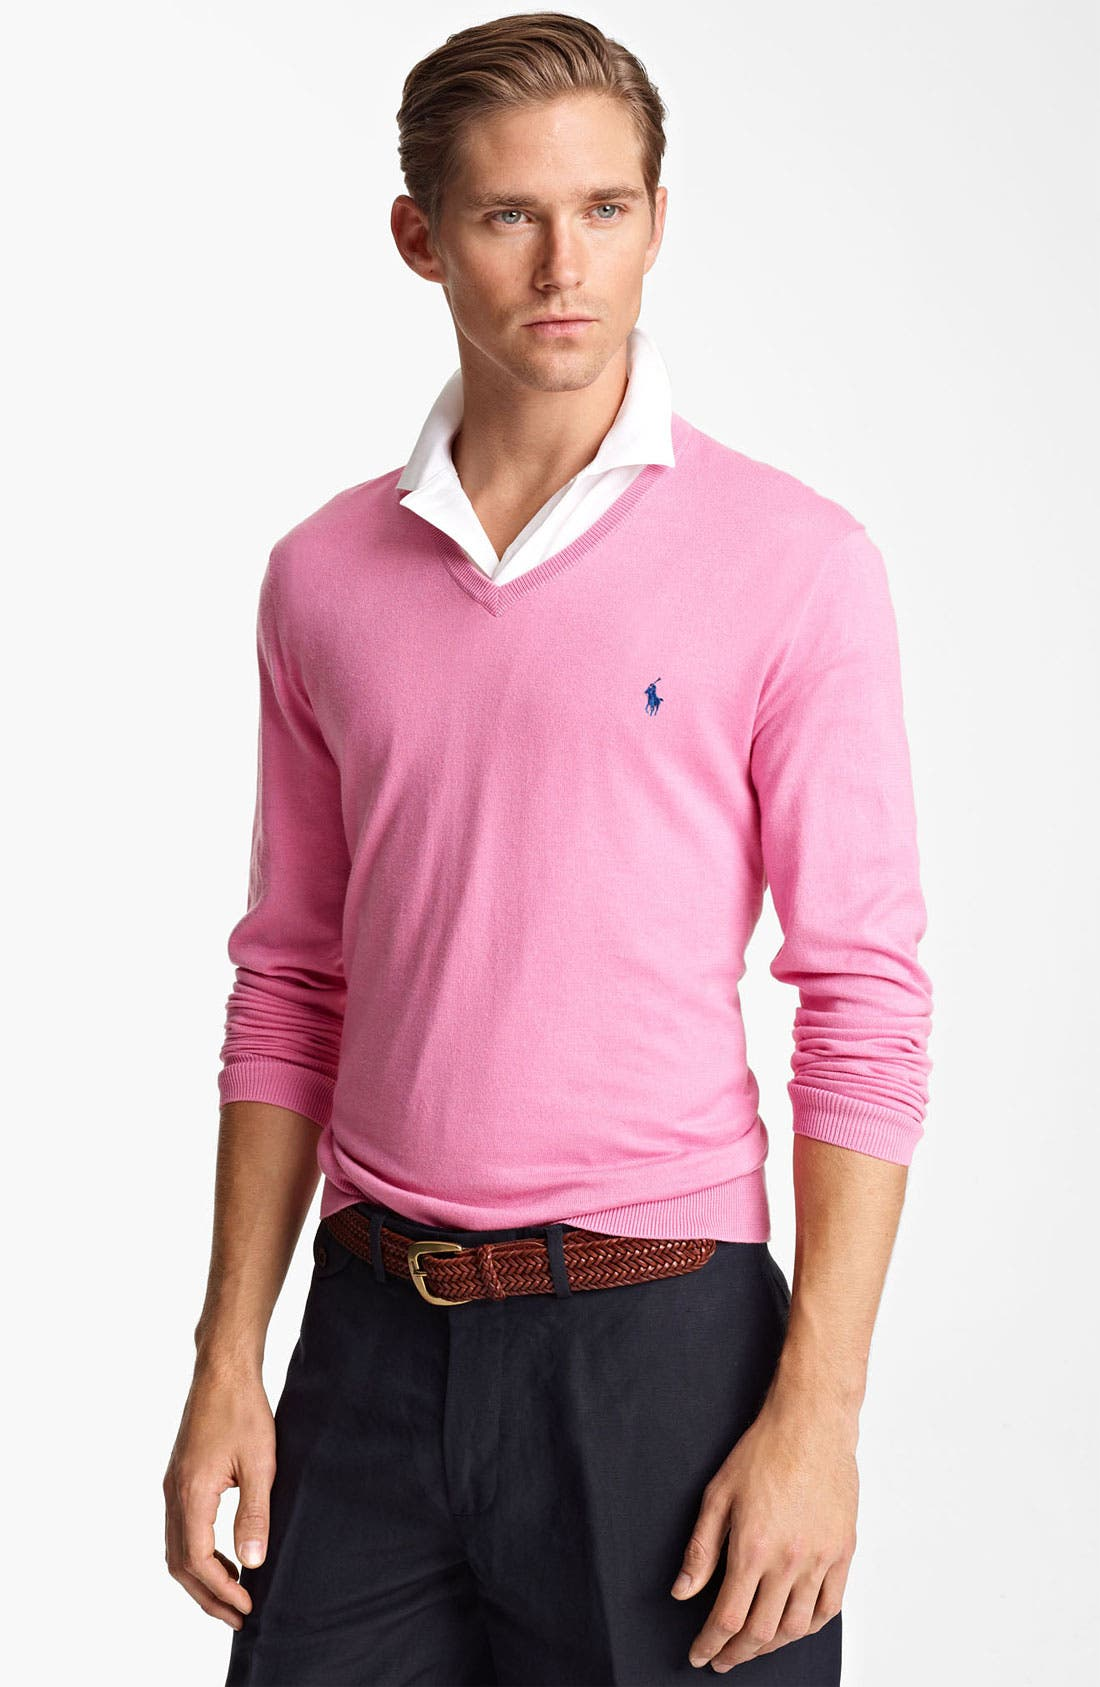 Alternate Image 1 Selected - Polo Ralph Lauren Cotton & Cashmere V-Neck Sweater